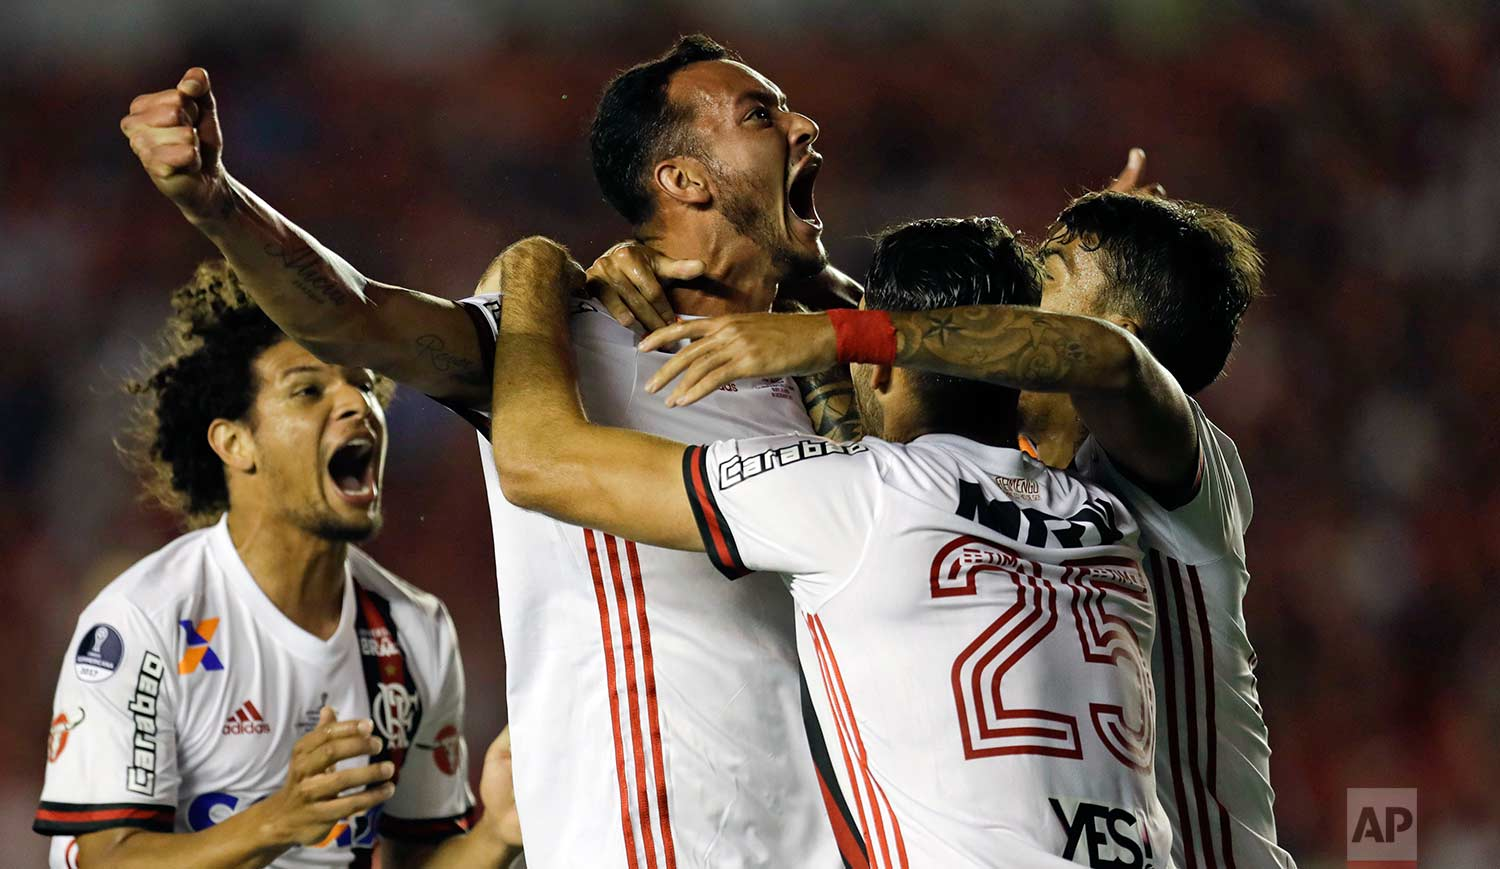 In this Wednesday, Dec. 6, 2017 photo, Brazil's Flamengo Rever, center, celebrates his goal against Argentina's Independiente during a Copa Sudamericana first leg, final soccer match in Buenos Aires, Argentina. Independiente went on to win the opening leg 2-1. (AP Photo/Natacha Pisarenko)